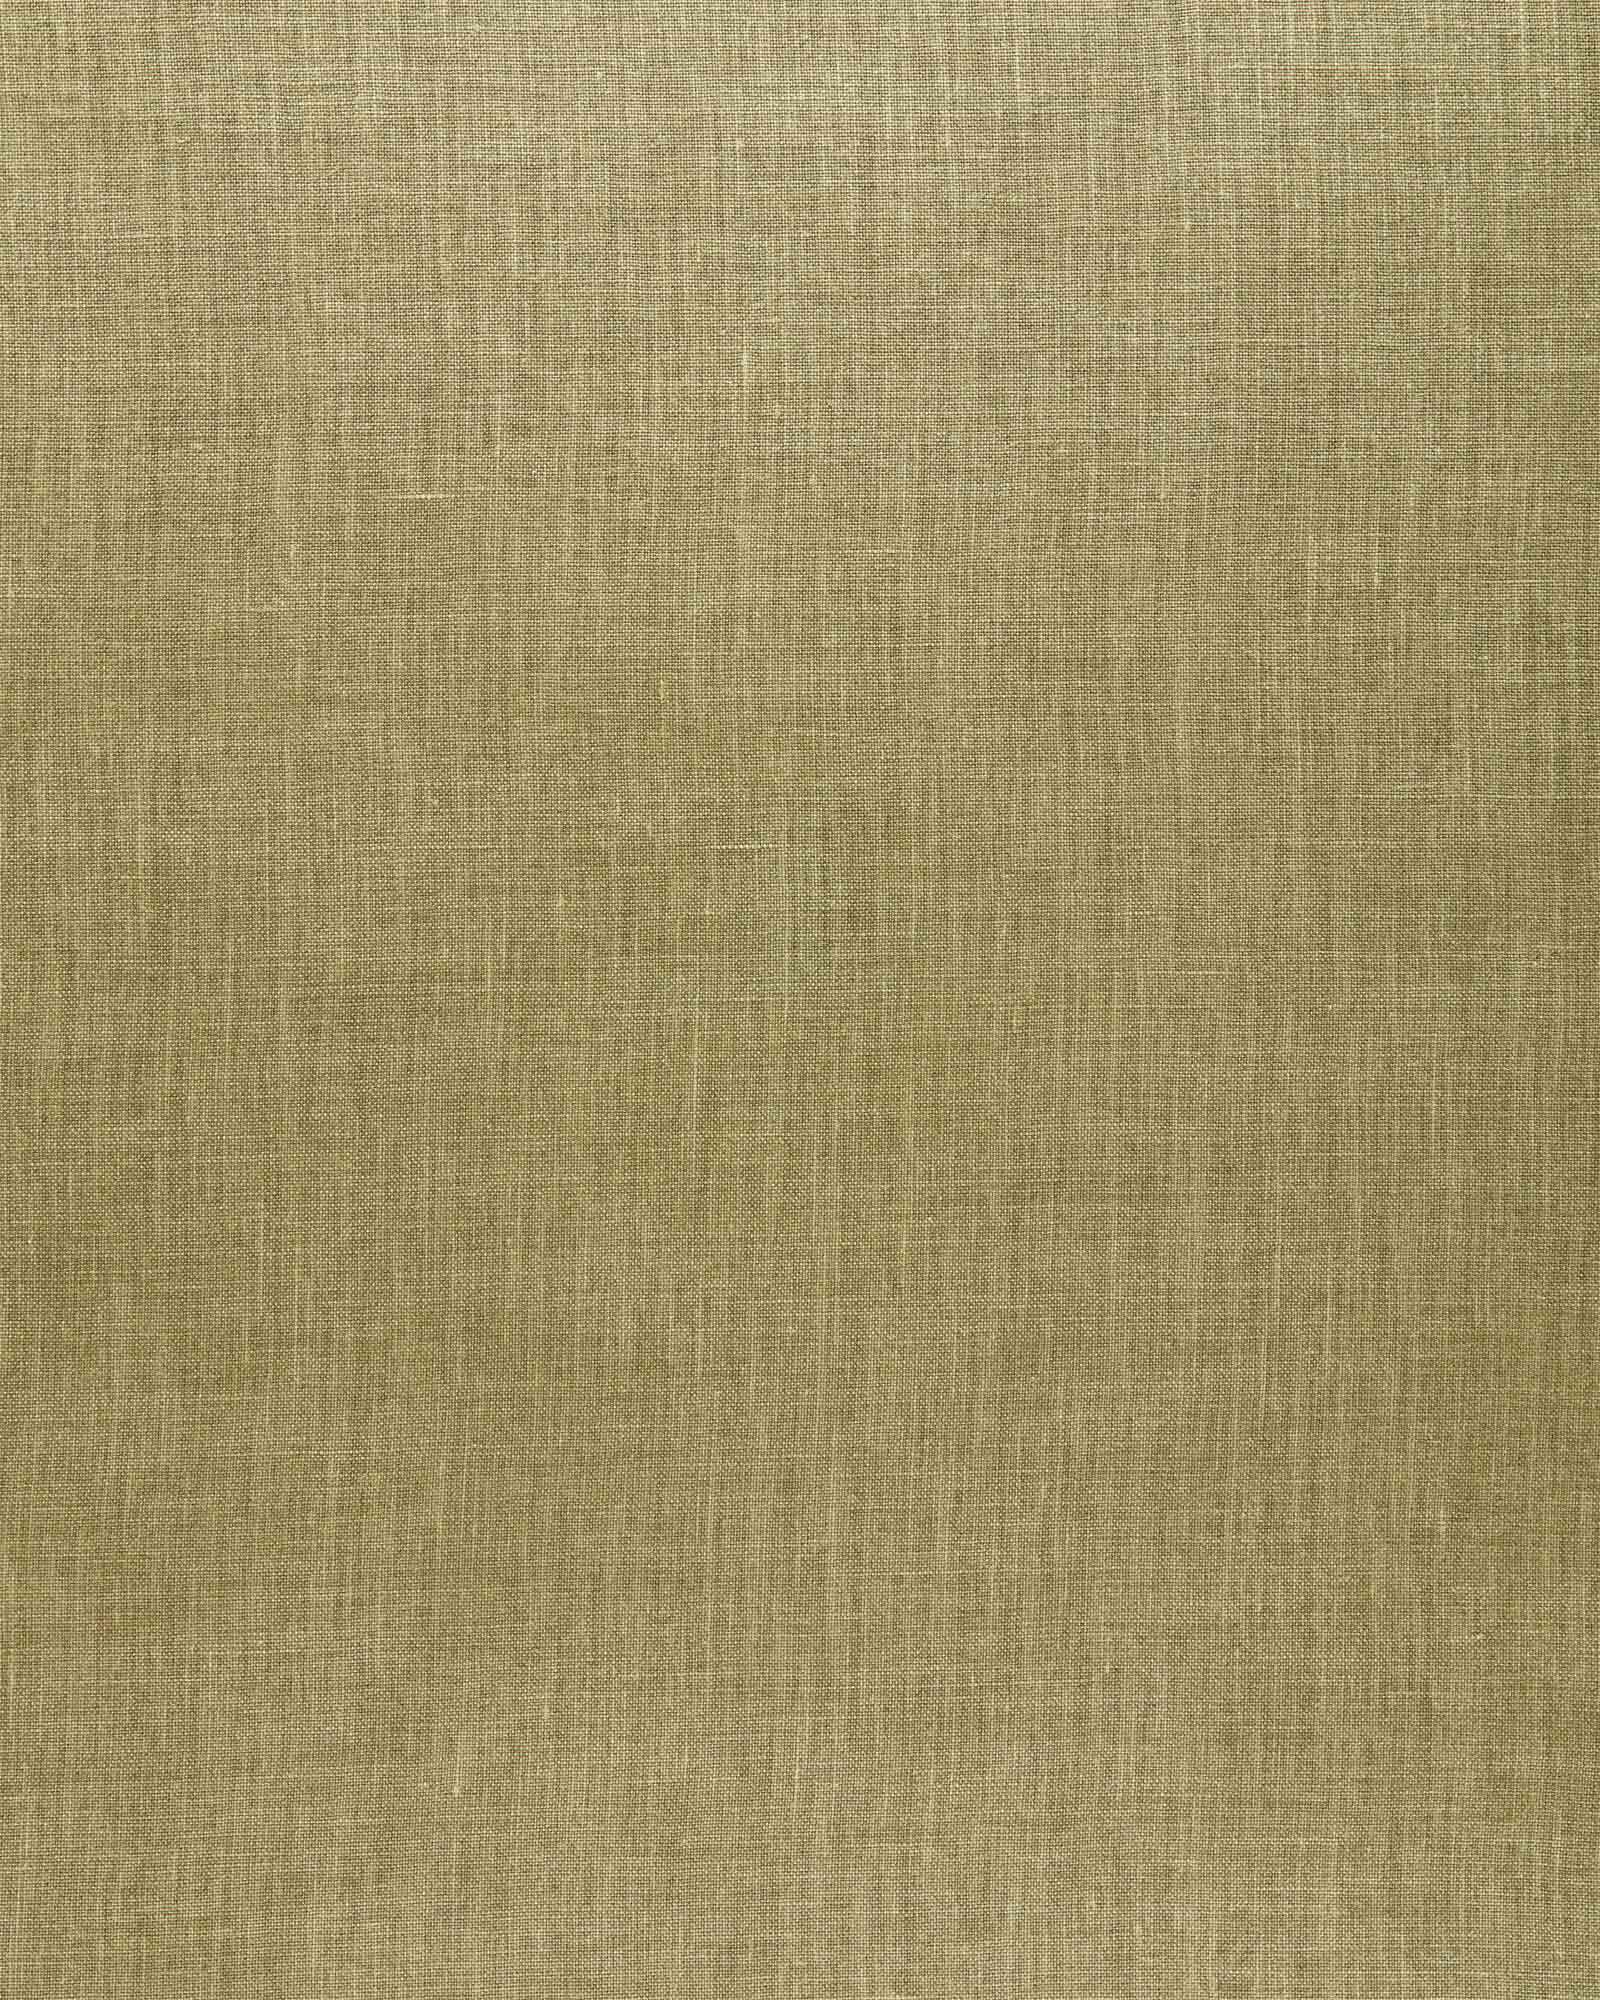 Washed Linen - Grove,